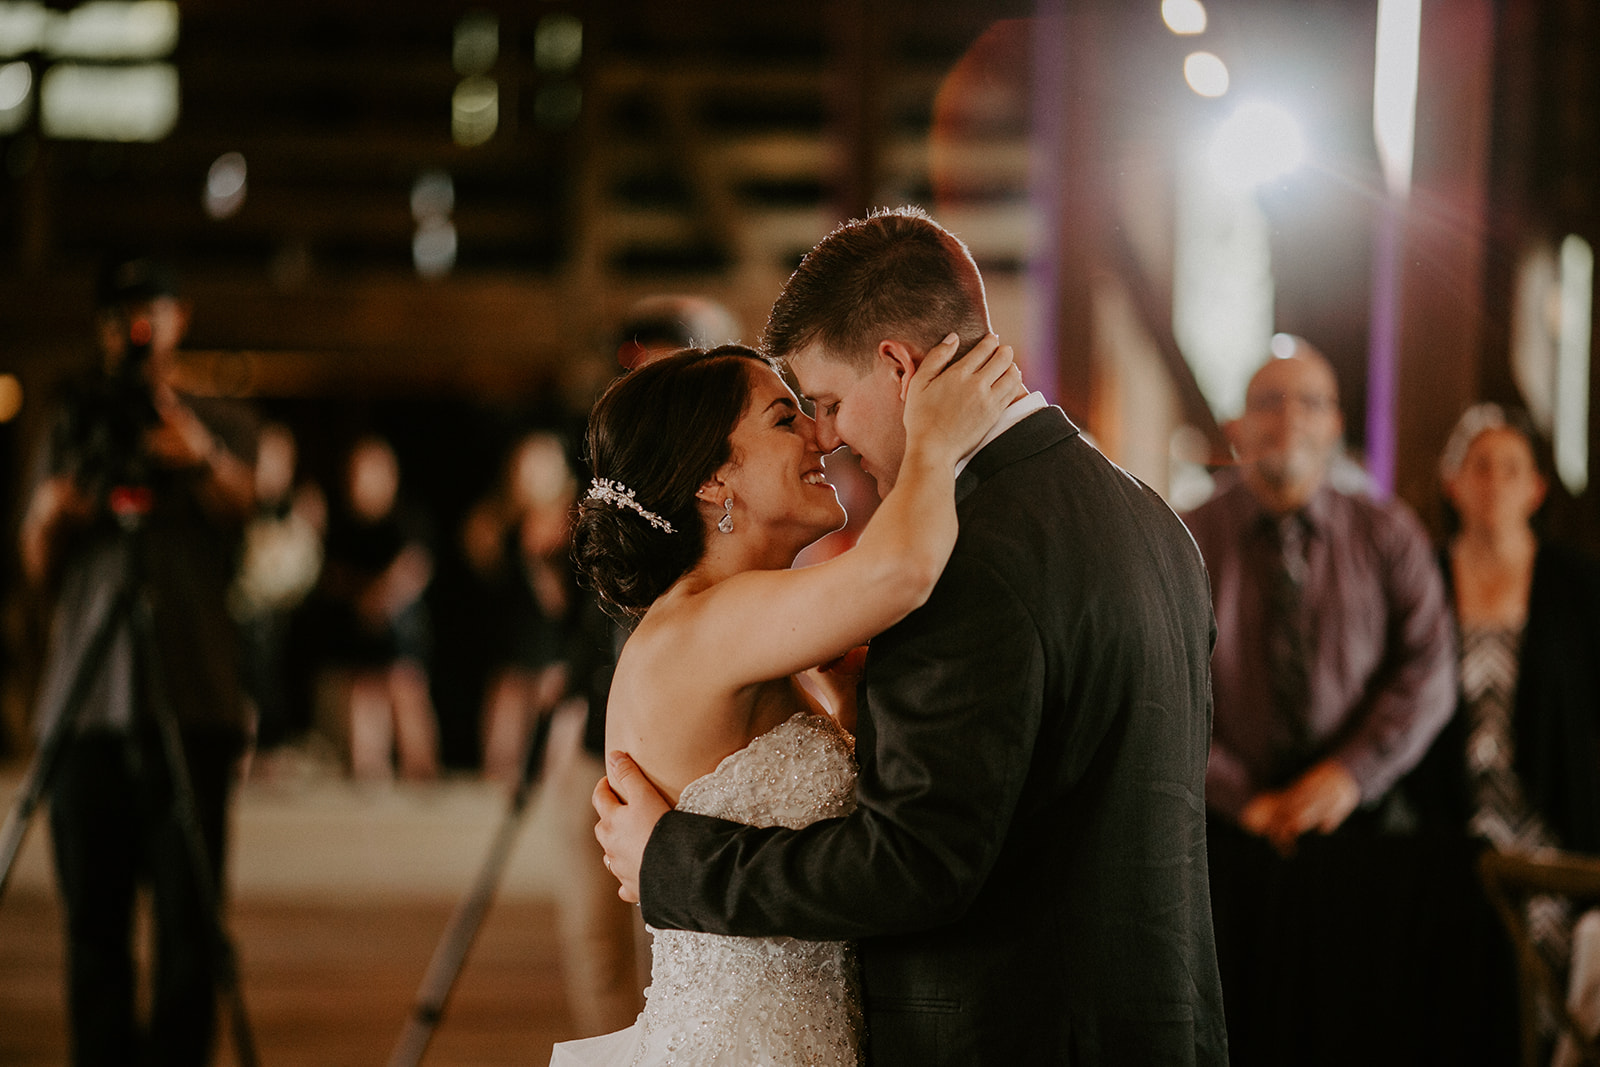 Wedding DJ Services in York County PA